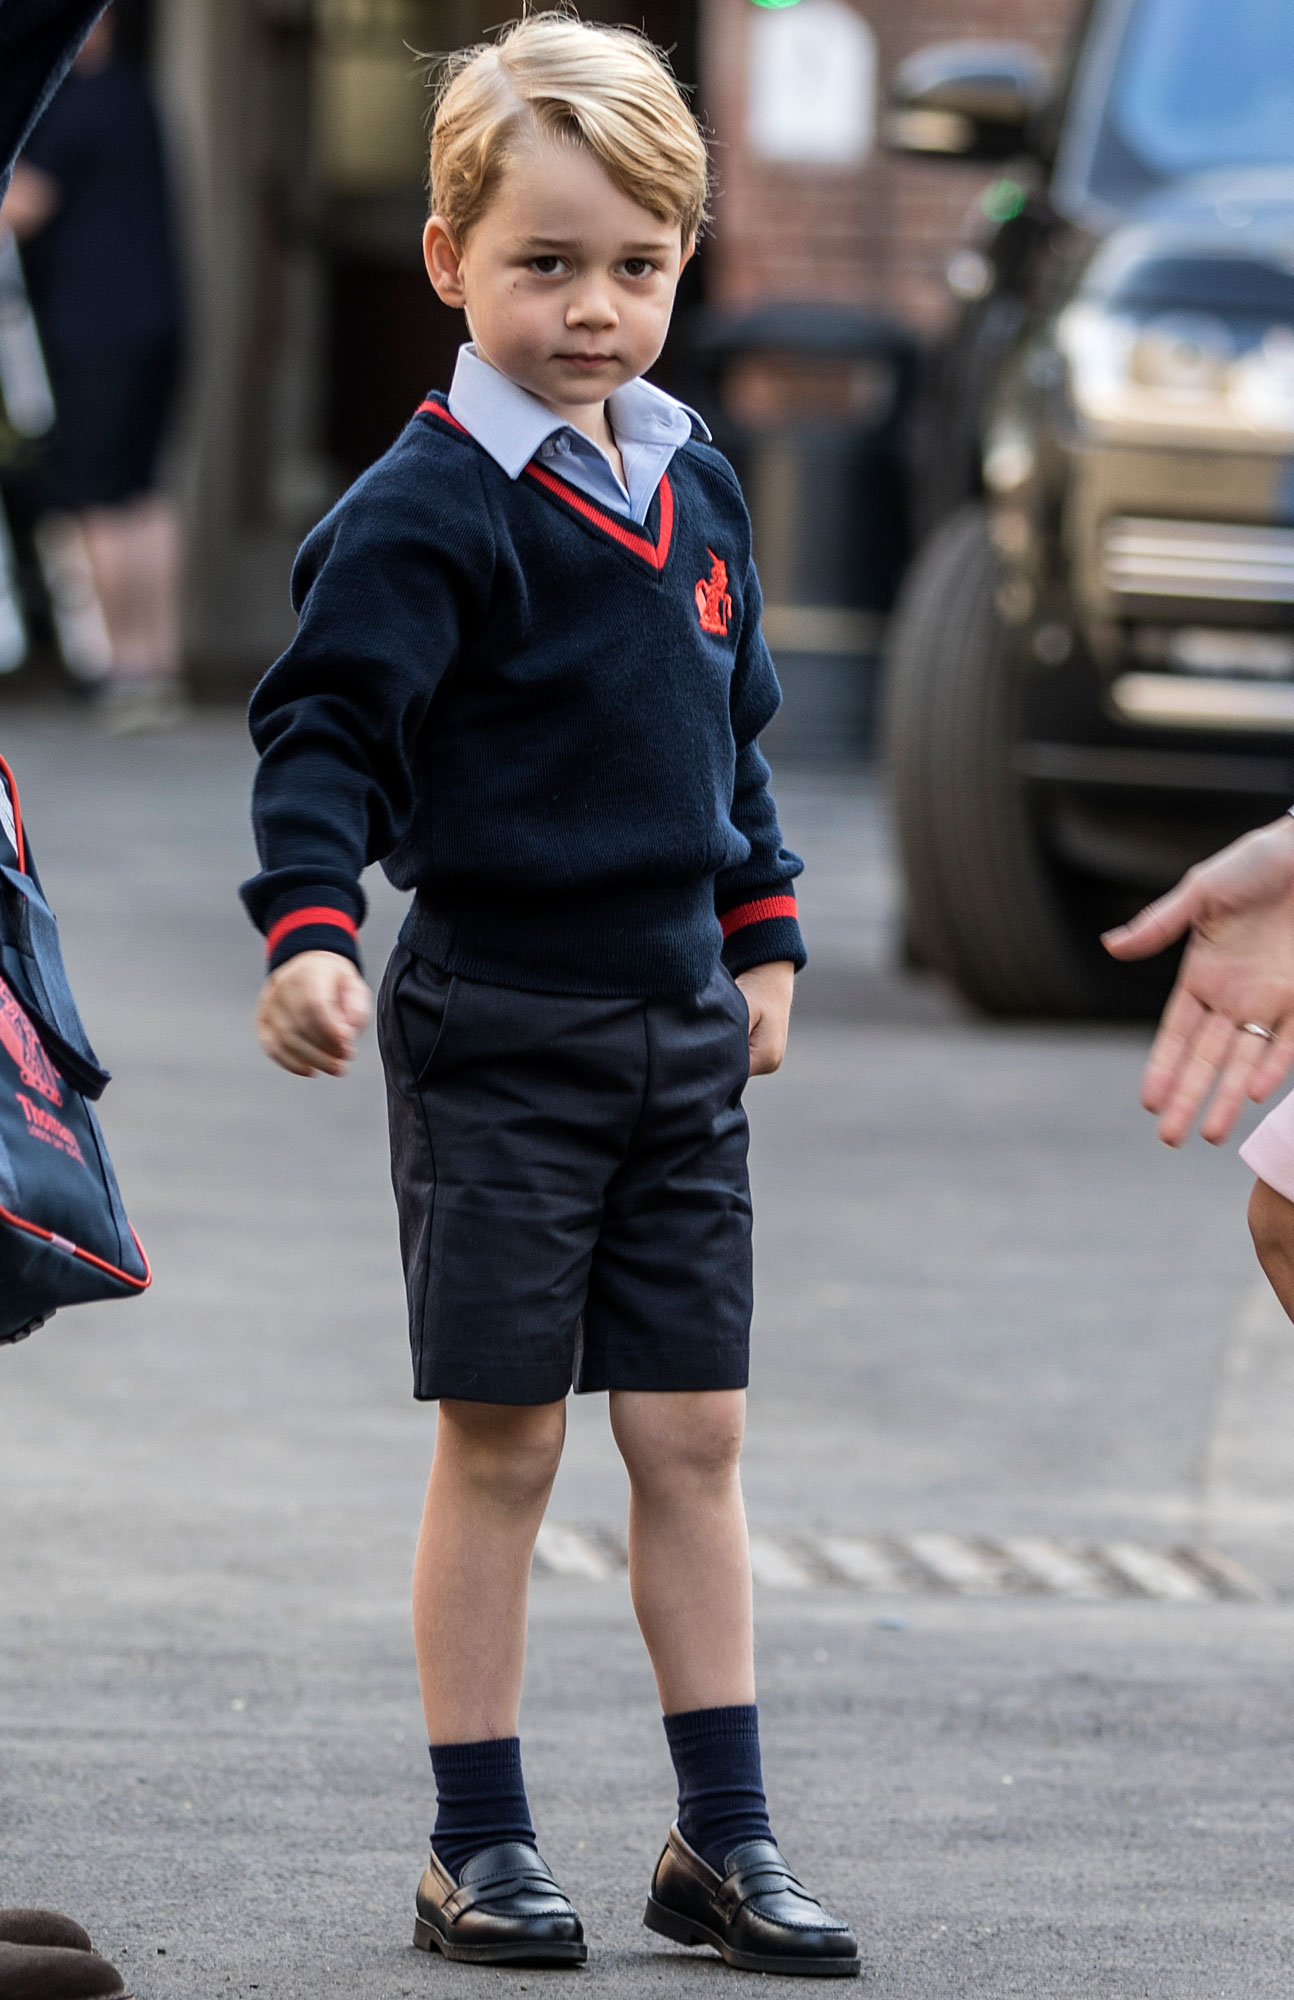 Prince William Reveals 4-Year-Old Prince George's Favorite Movie —and It's Royally Perfect